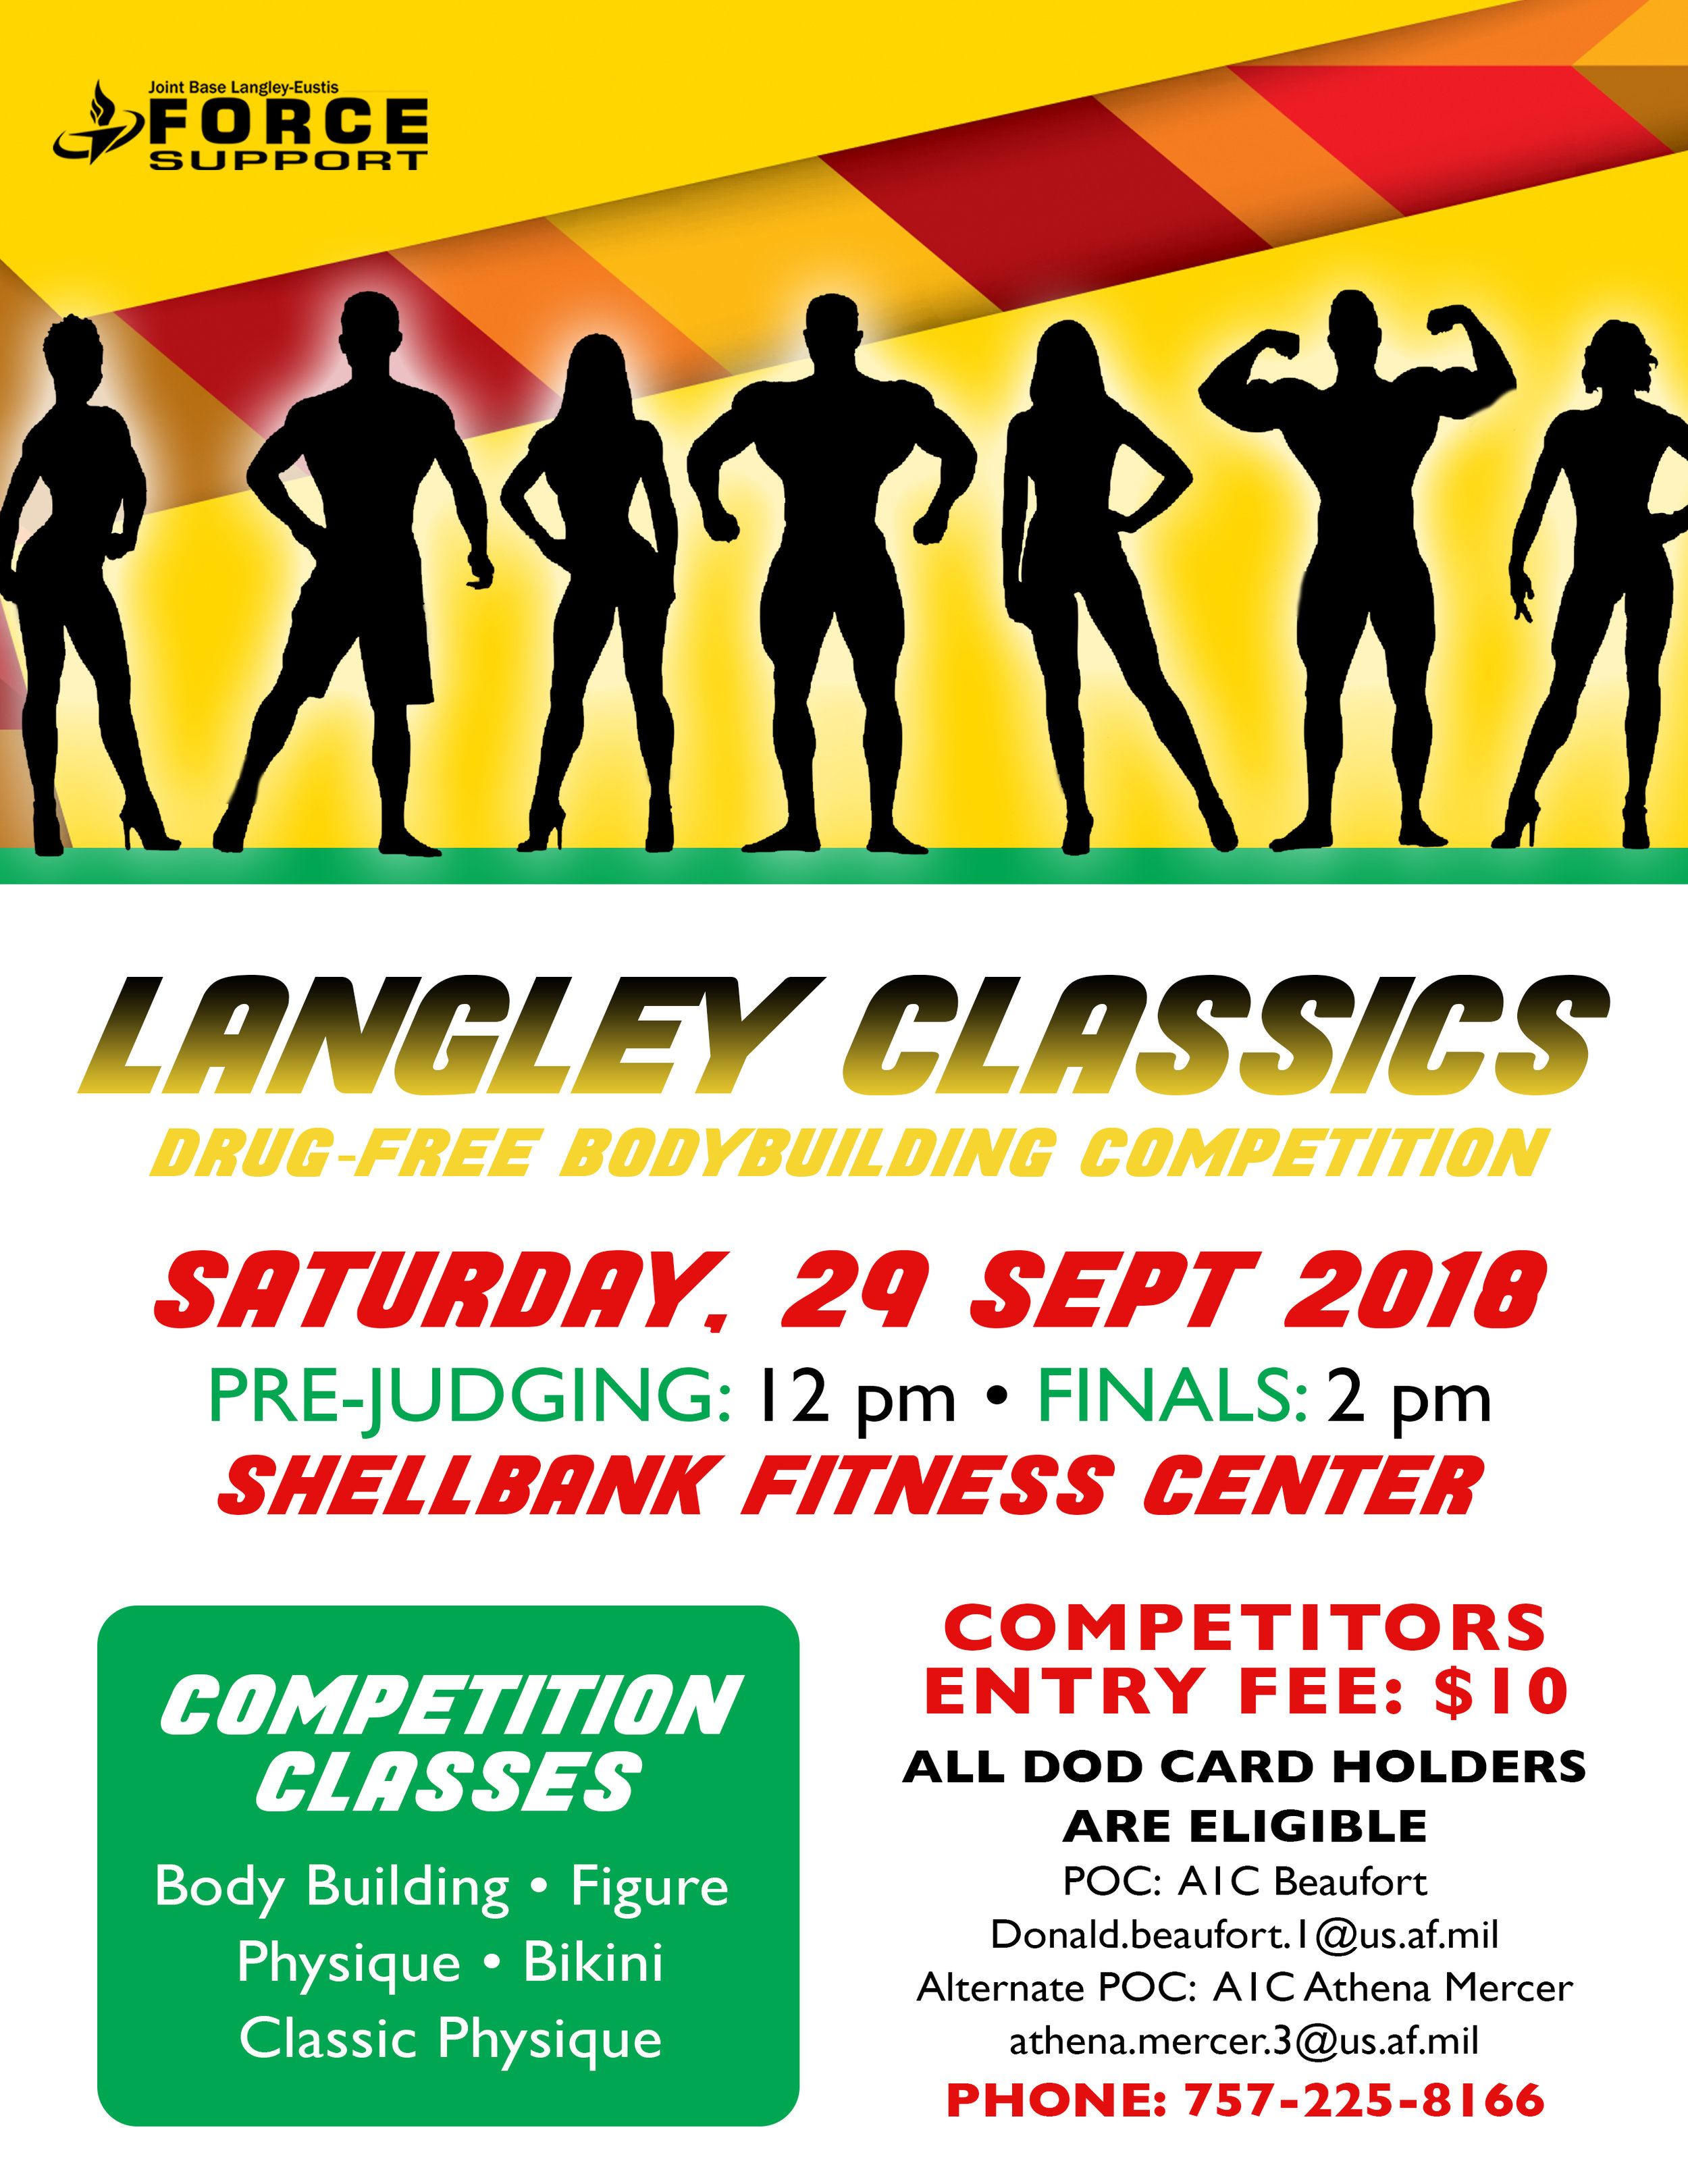 Langley Classics! - Langley Classics Drug-Free Body Building Competition Saturday, 29 Sept Shellbank Fitness CenterCompetitors Entry Fee: $10All DoD Card Holders are eligiblePre-judging: 12 pmFinals: 2pm